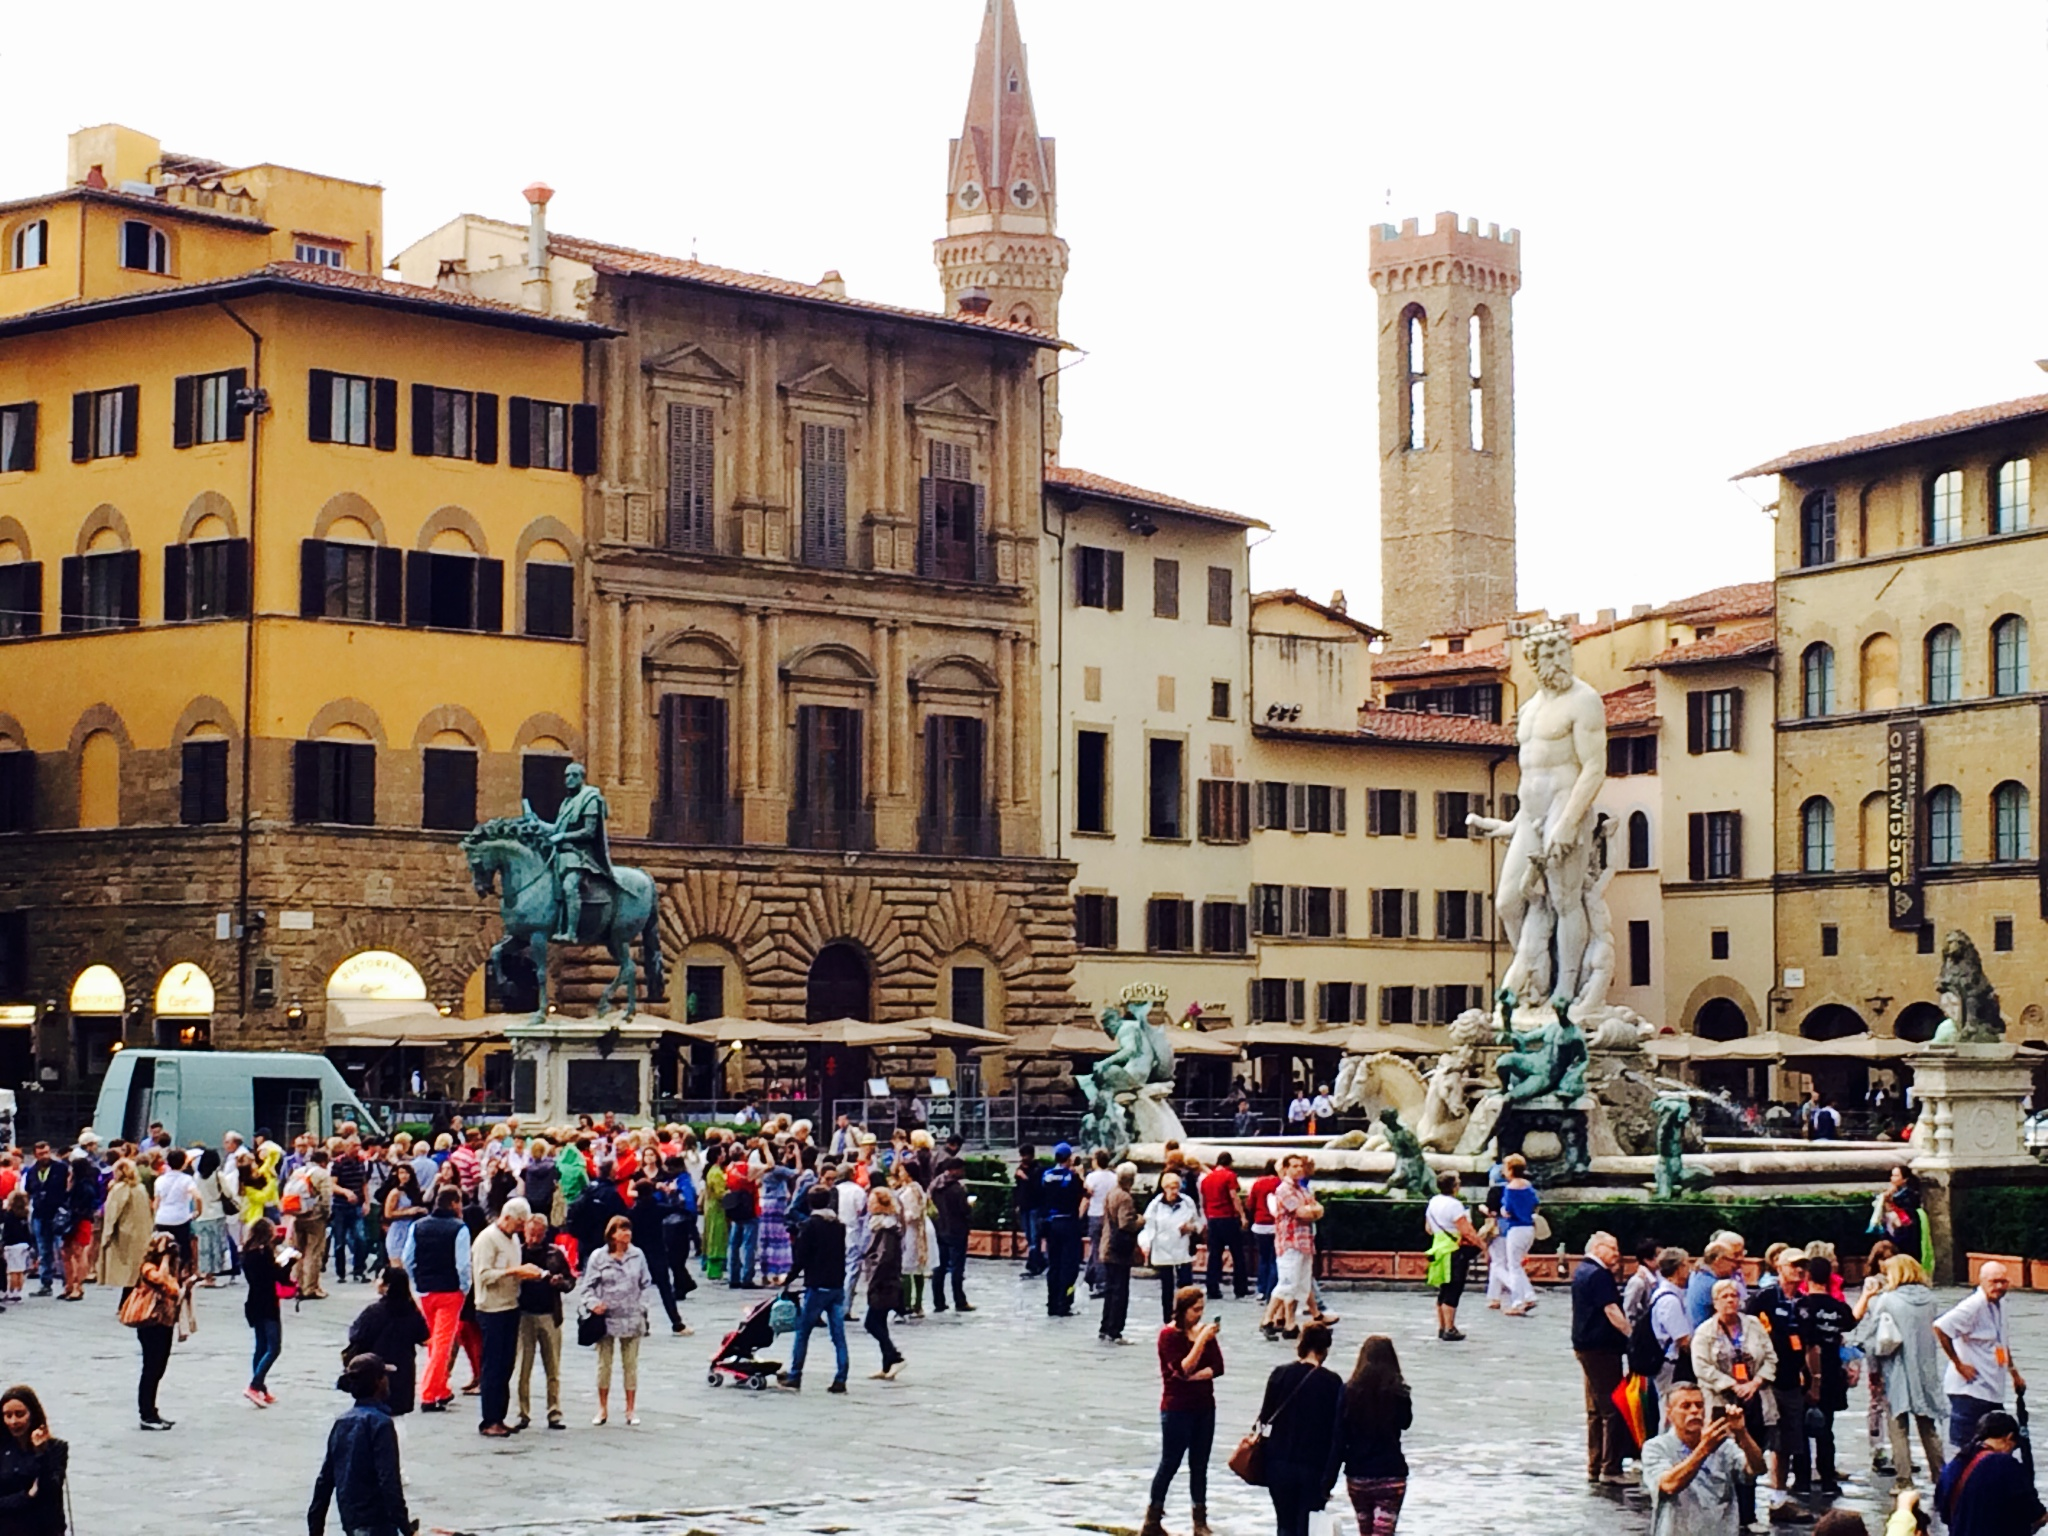 Plaza in Florence